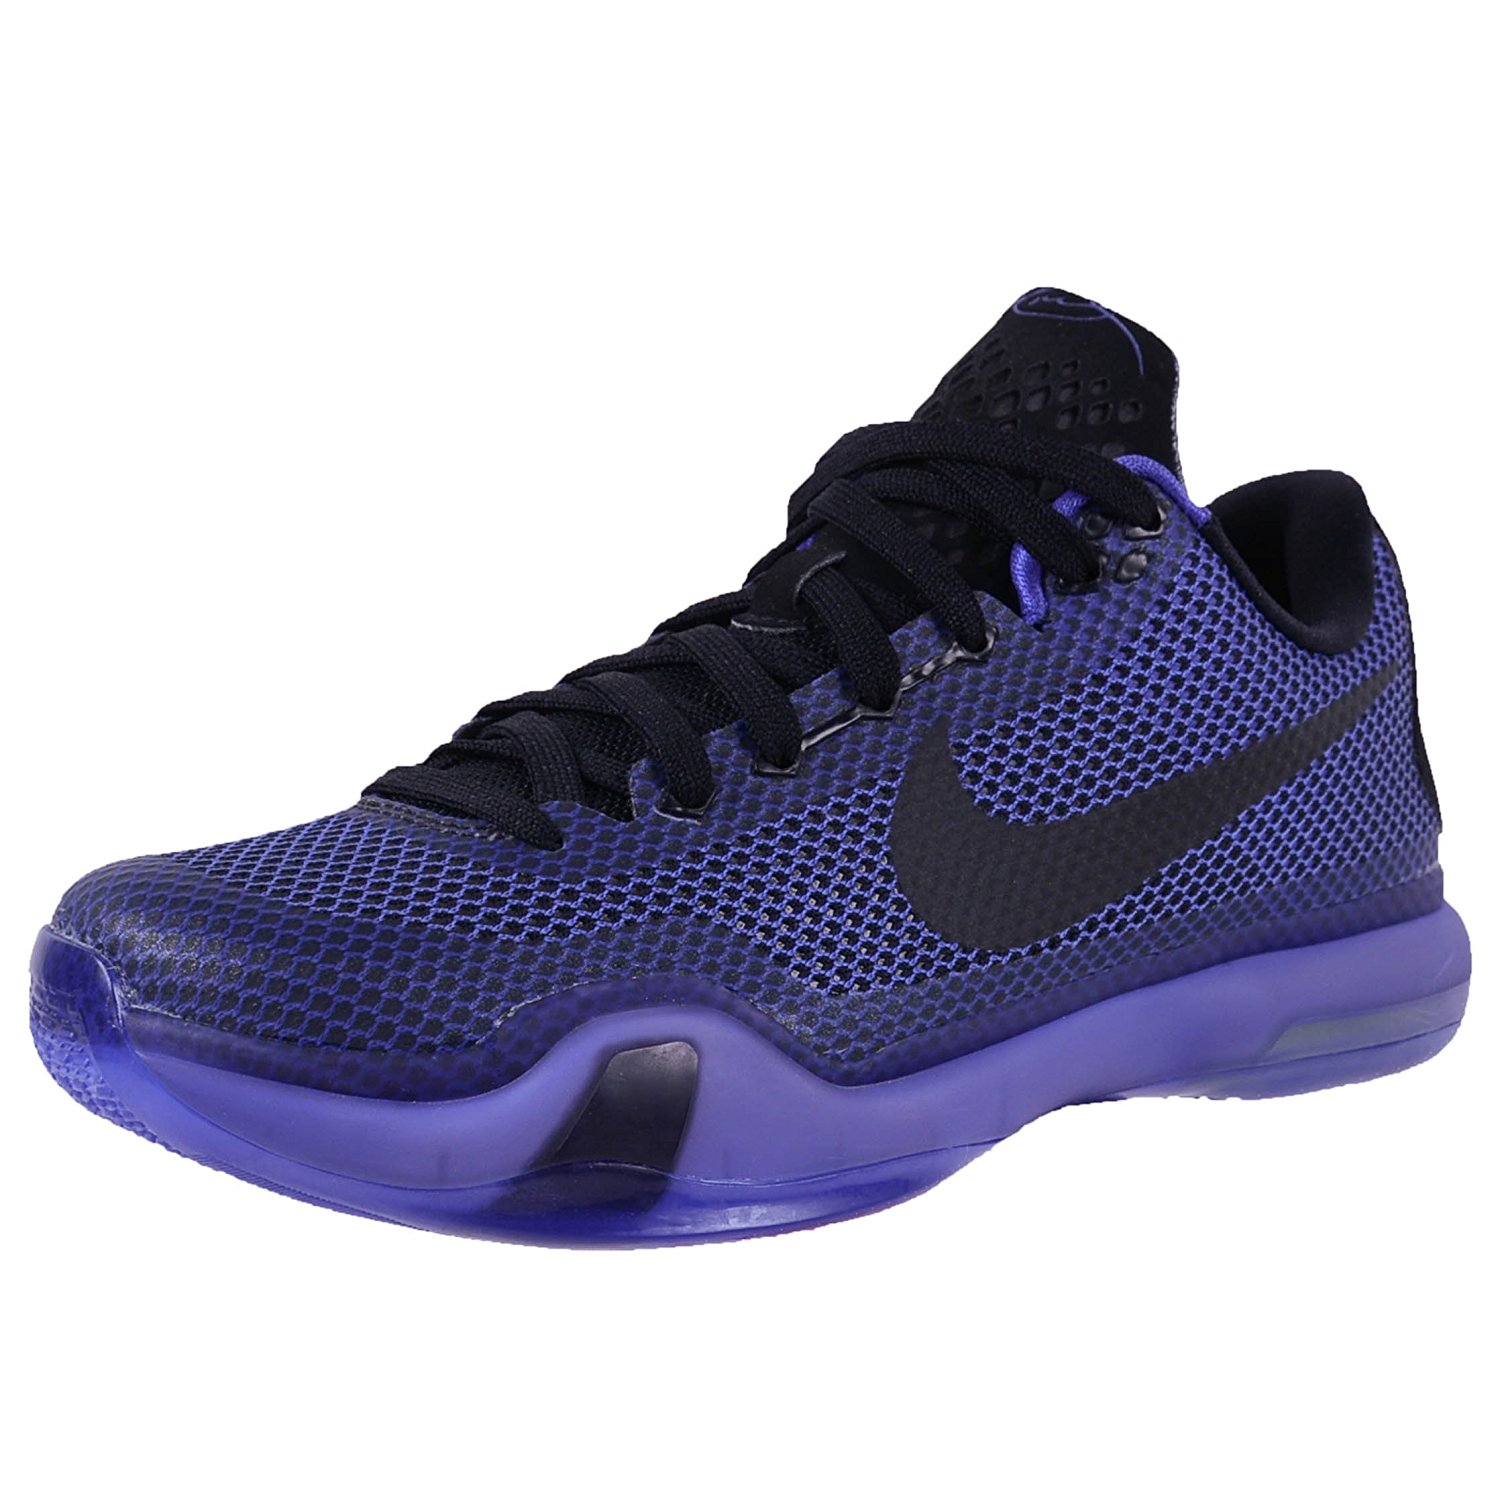 902ee8133a28 Buy NIKE KOBE X BLACKOUT BASKETBALL SHOES BLACK BLACK PERSIAN VIOLET 705317  005 in Cheap Price on m.alibaba.com